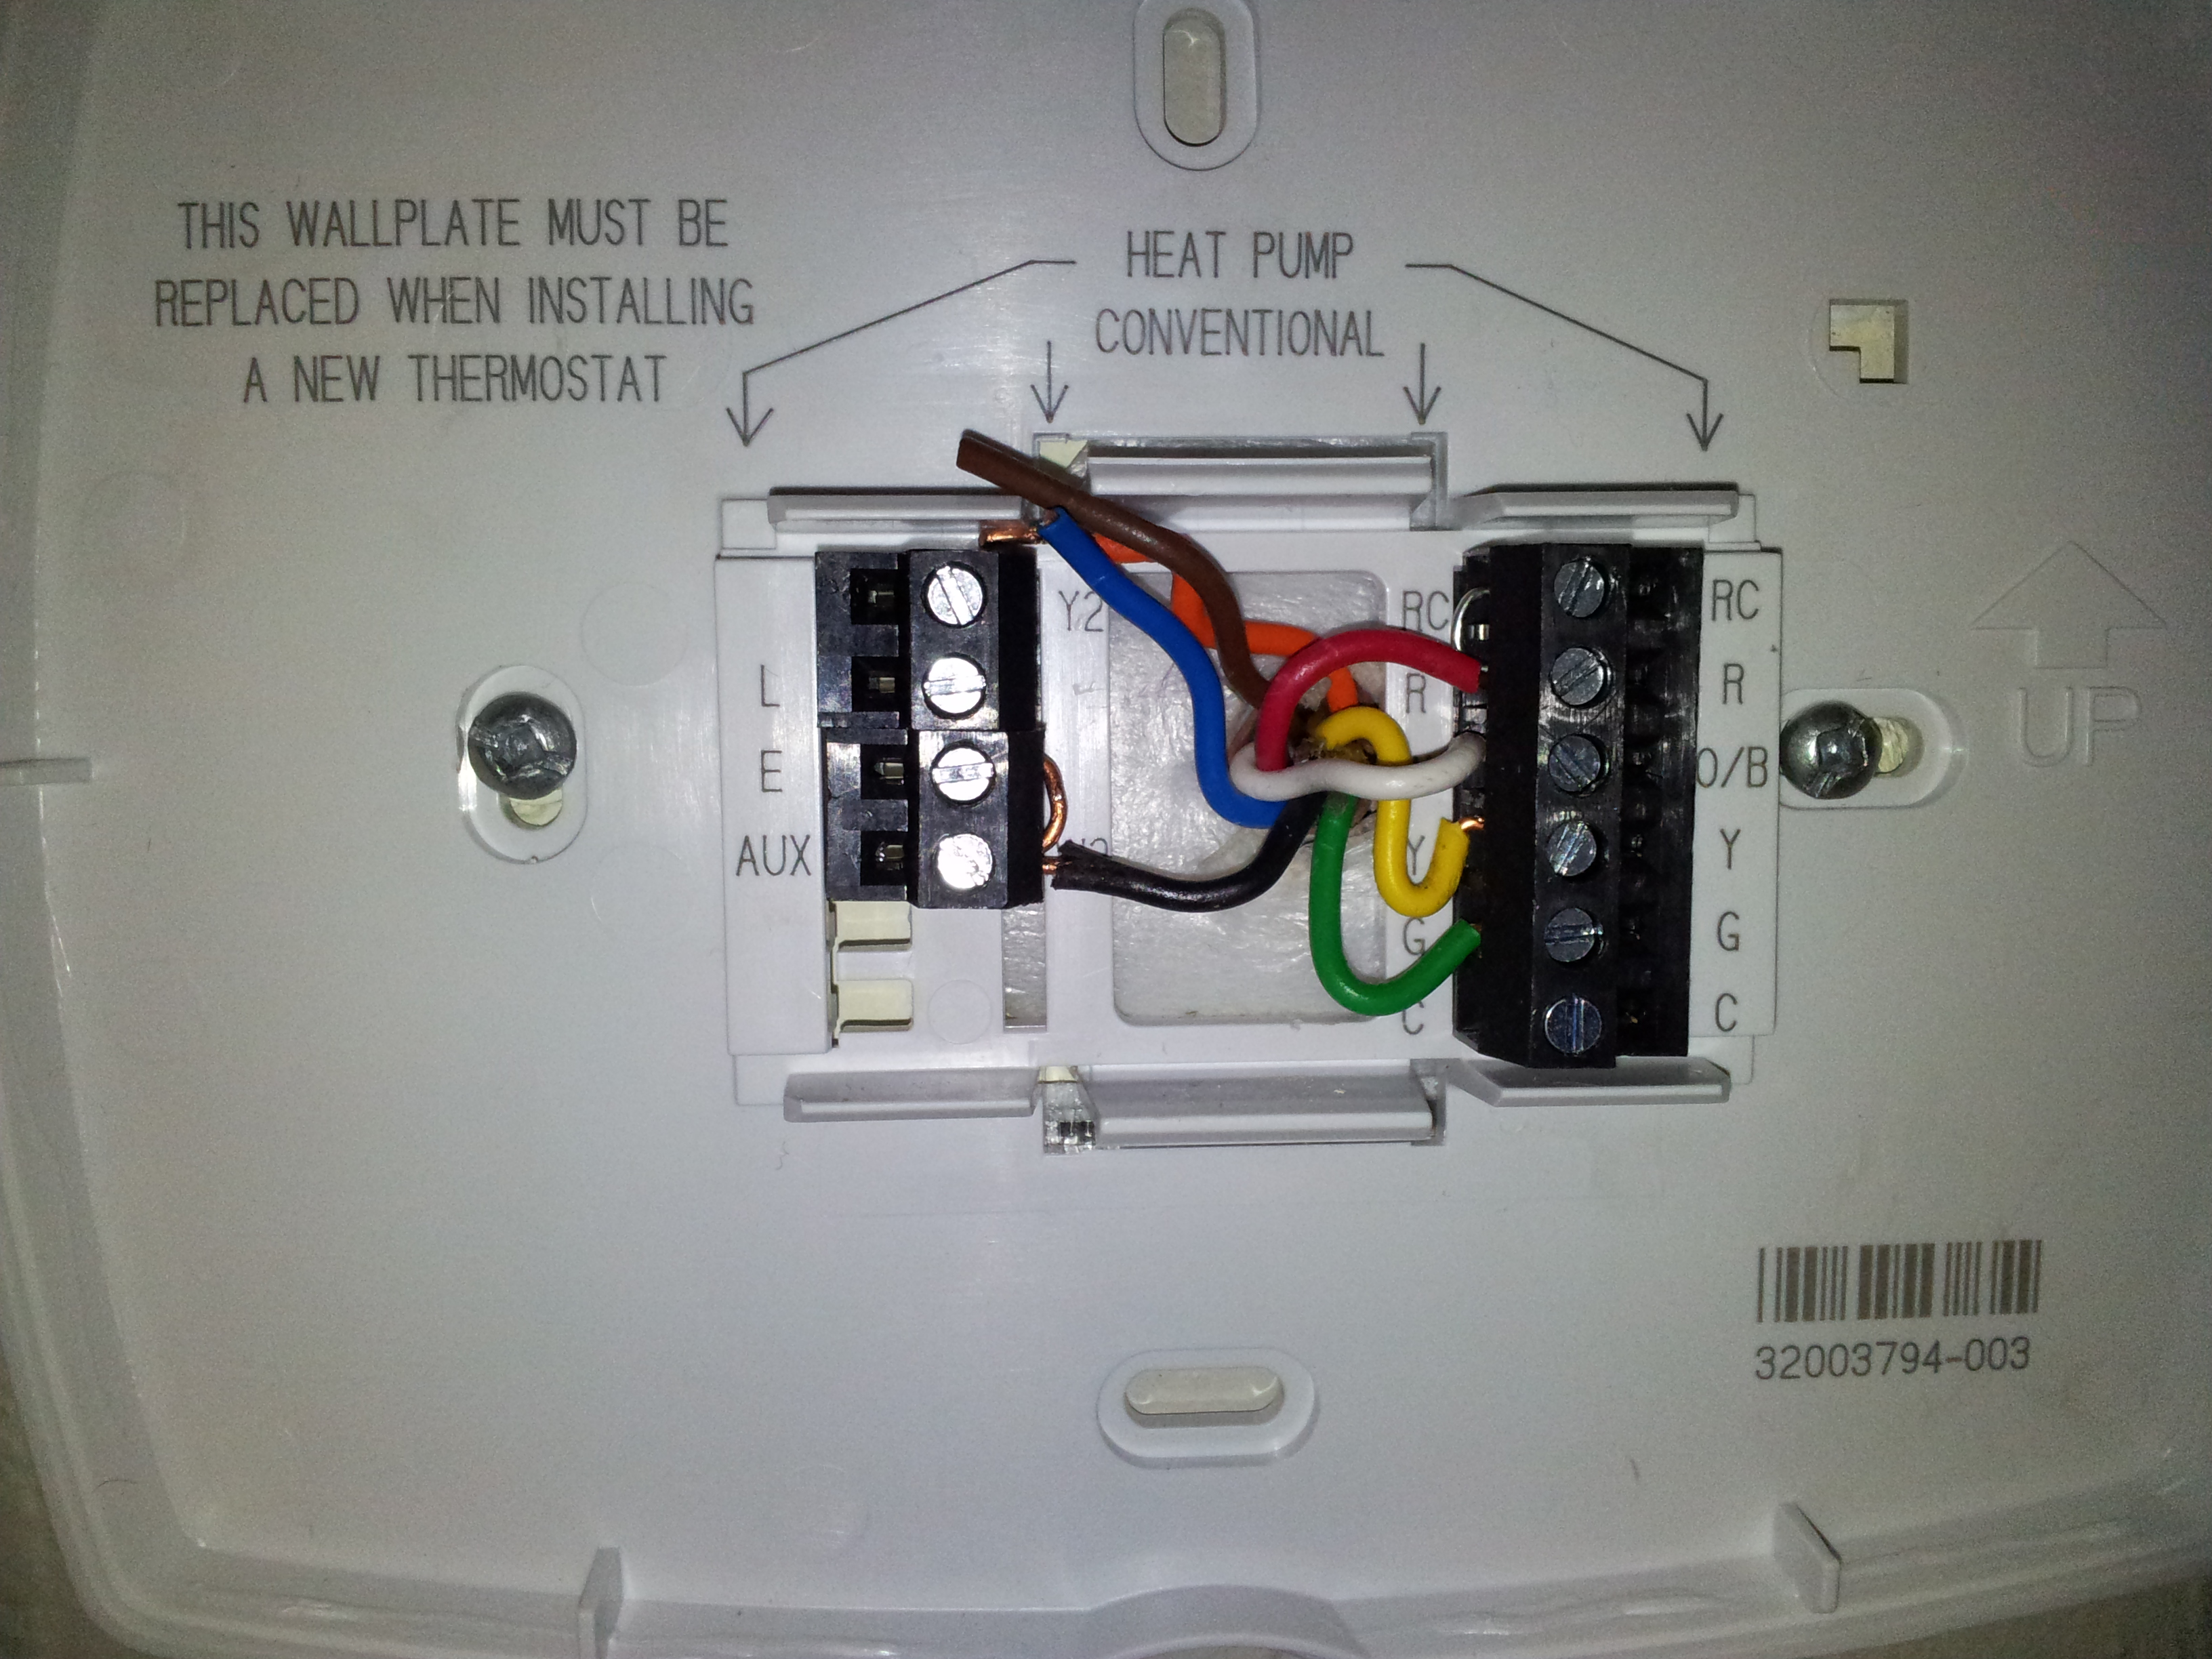 Honeywell Thermostat Th6220d1028 Wiring Diagram : Honeywell th d wiring diagram pro